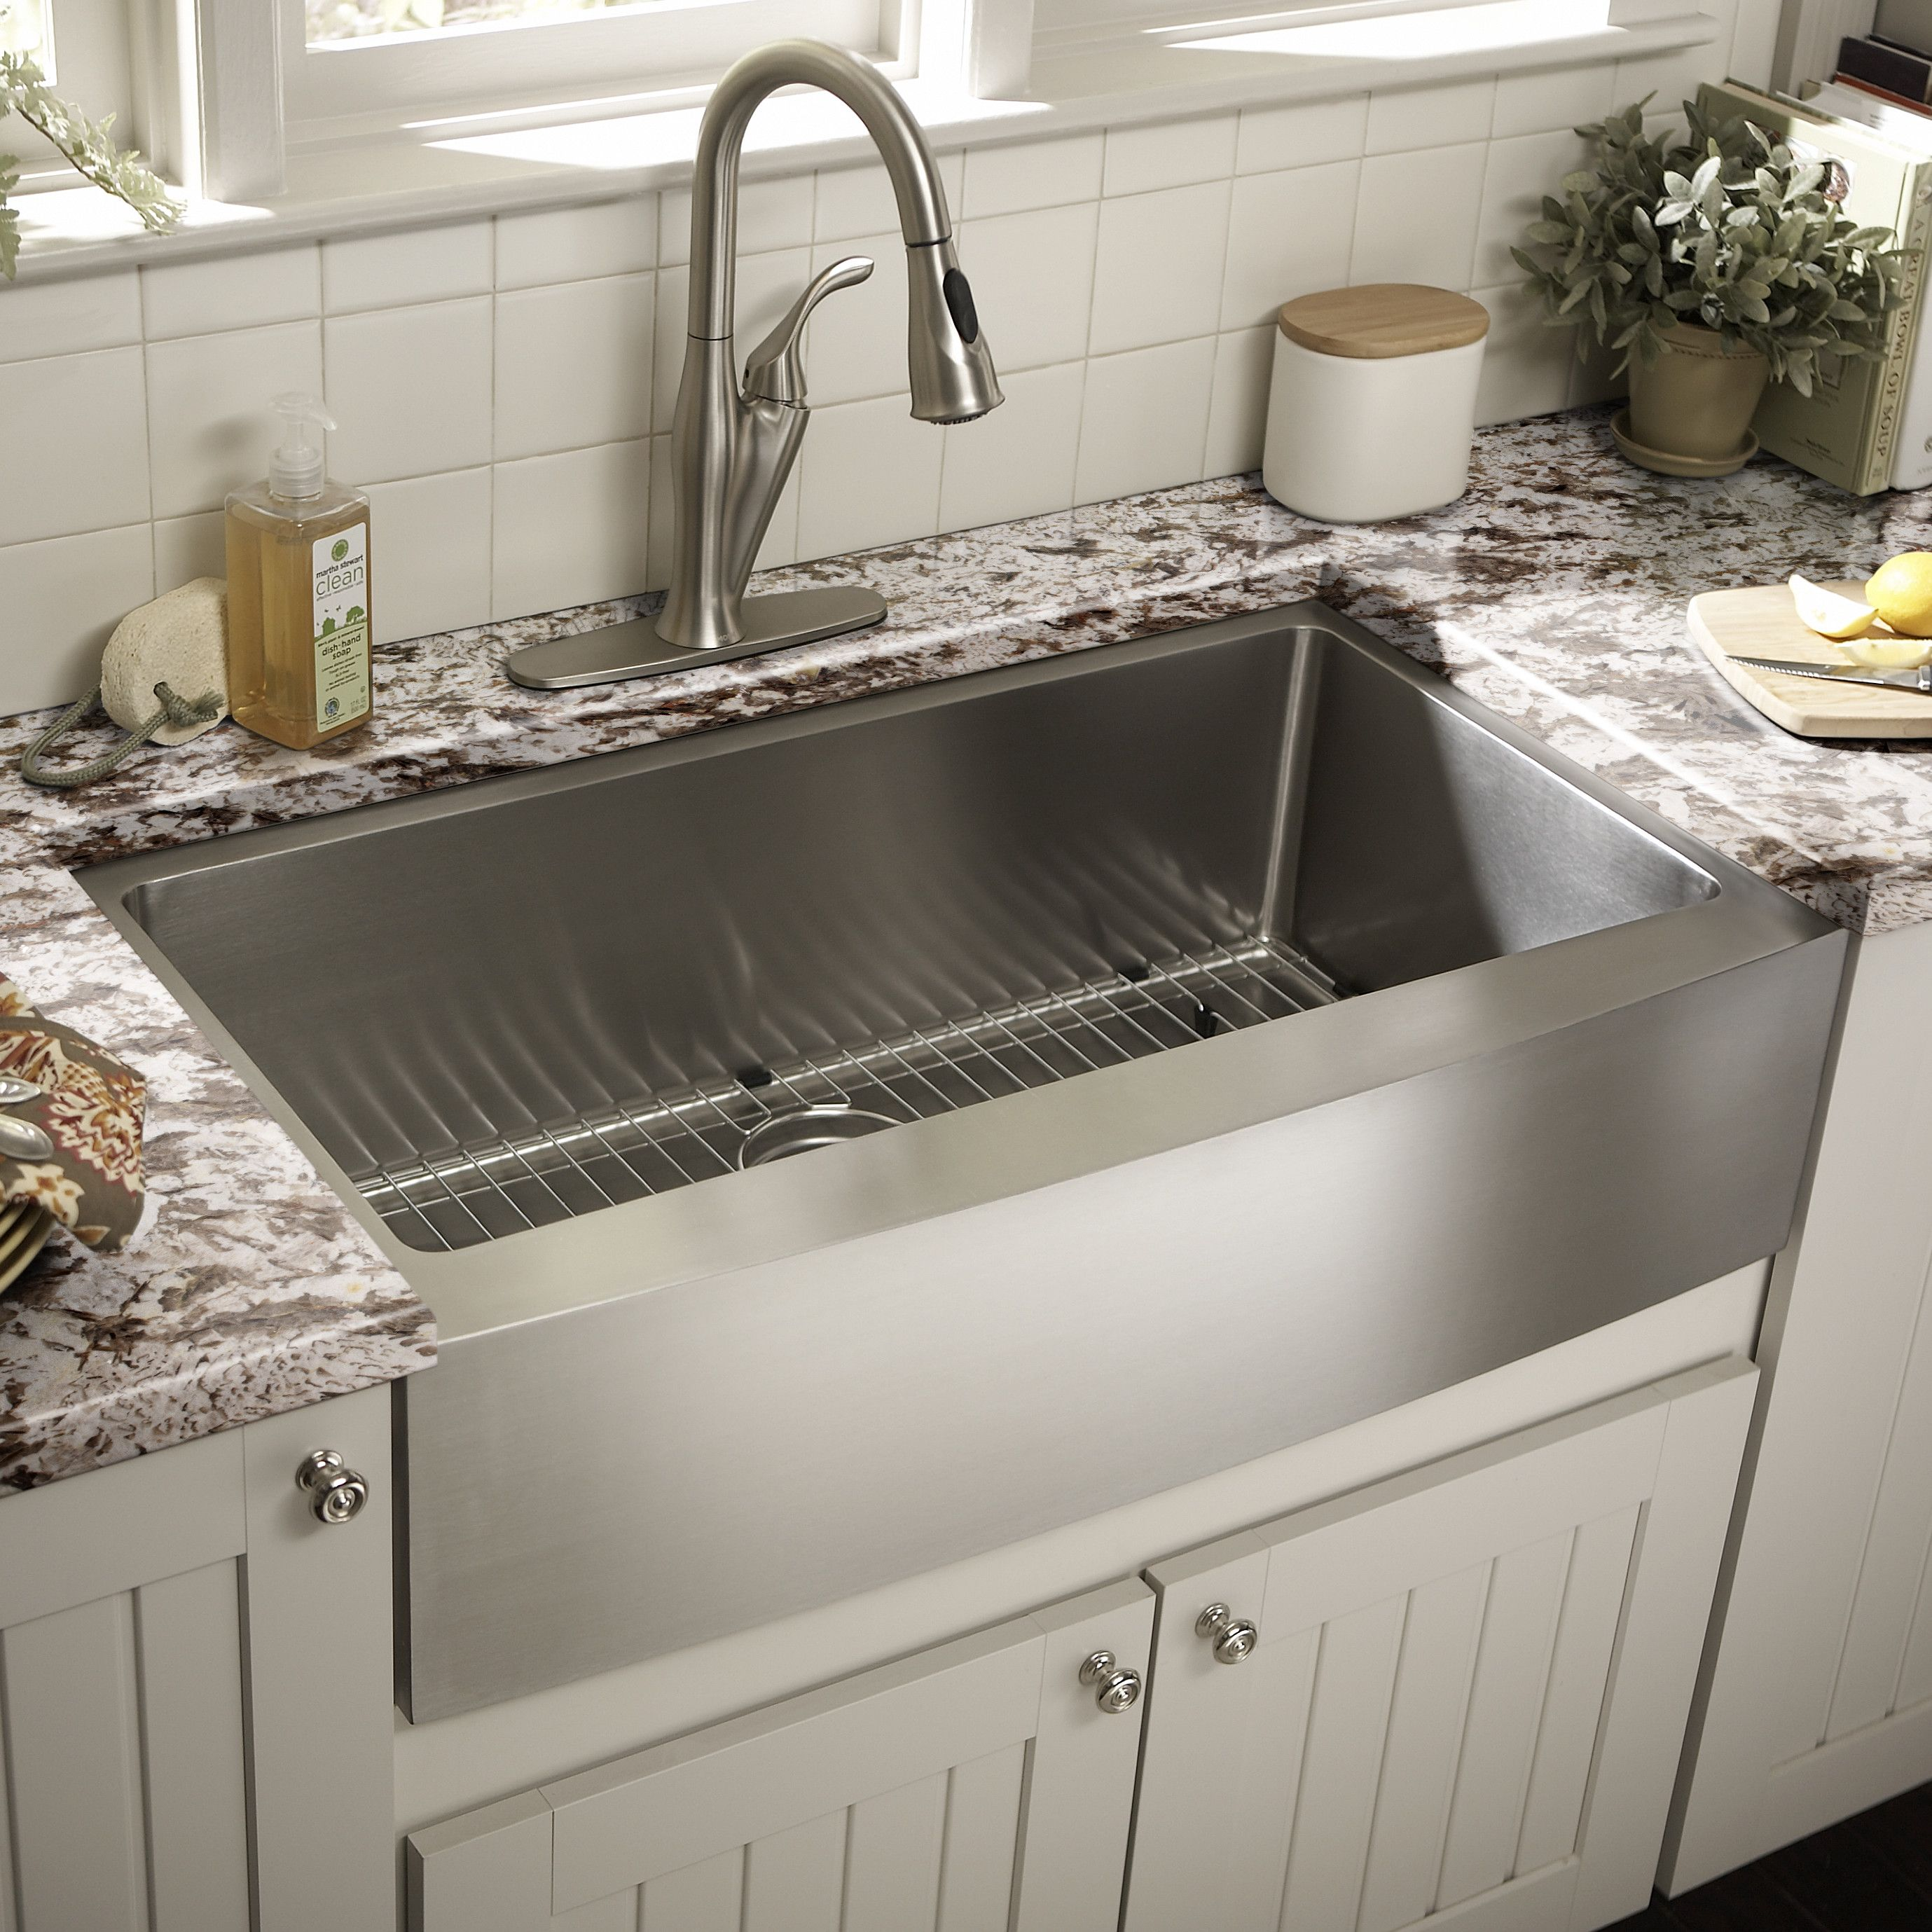 Youll love the 22 single bowl farmhouse kitchen sink at wayfair great deals on all kitchen dining products with free shipping on most stuff